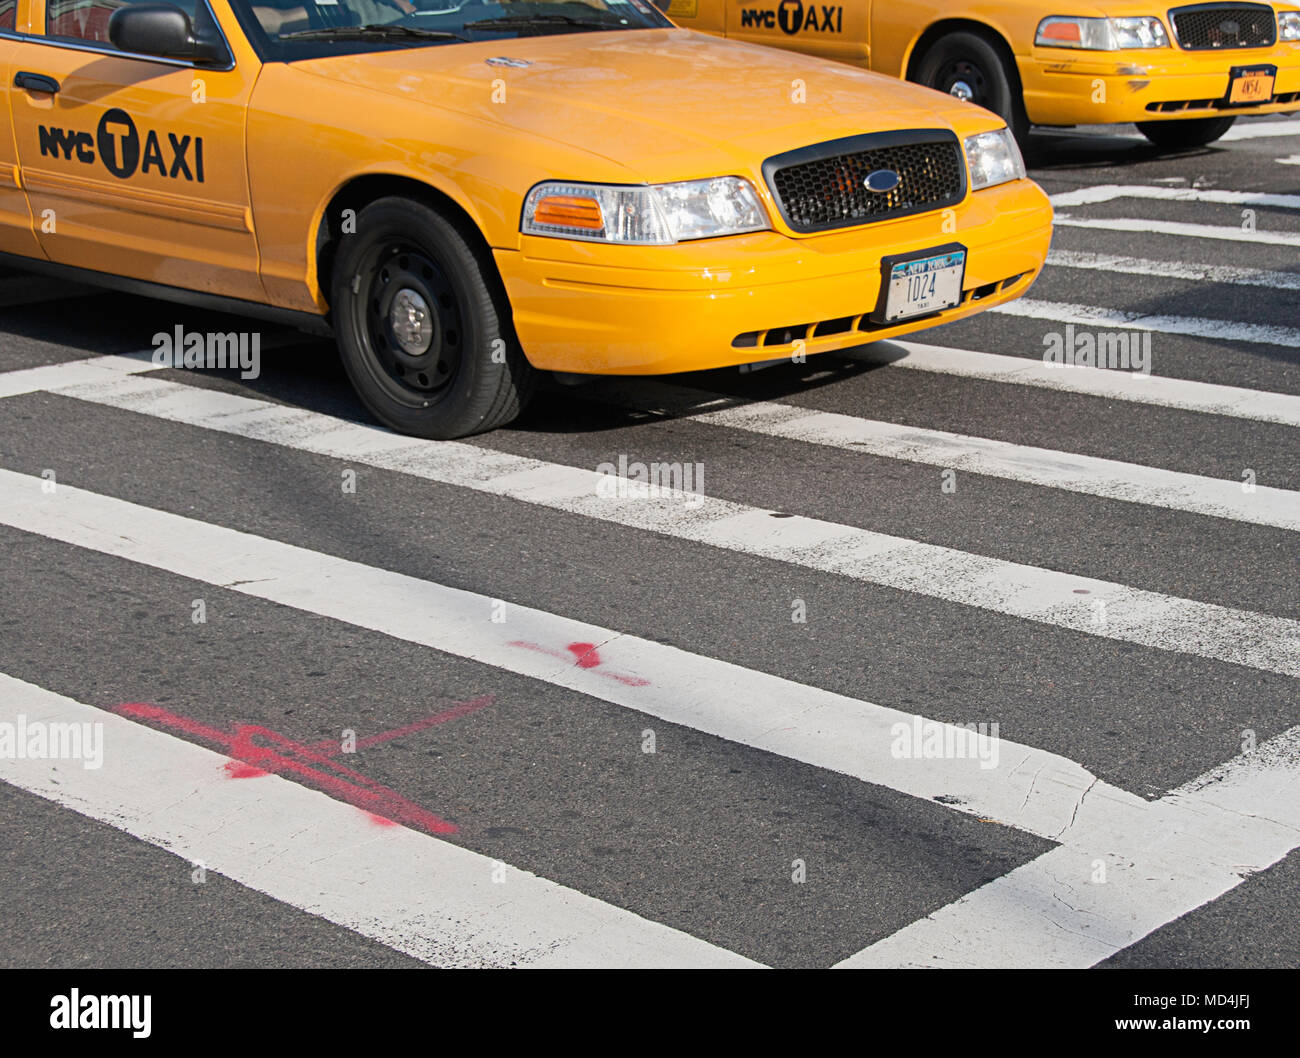 New York City taxis. - Stock Image